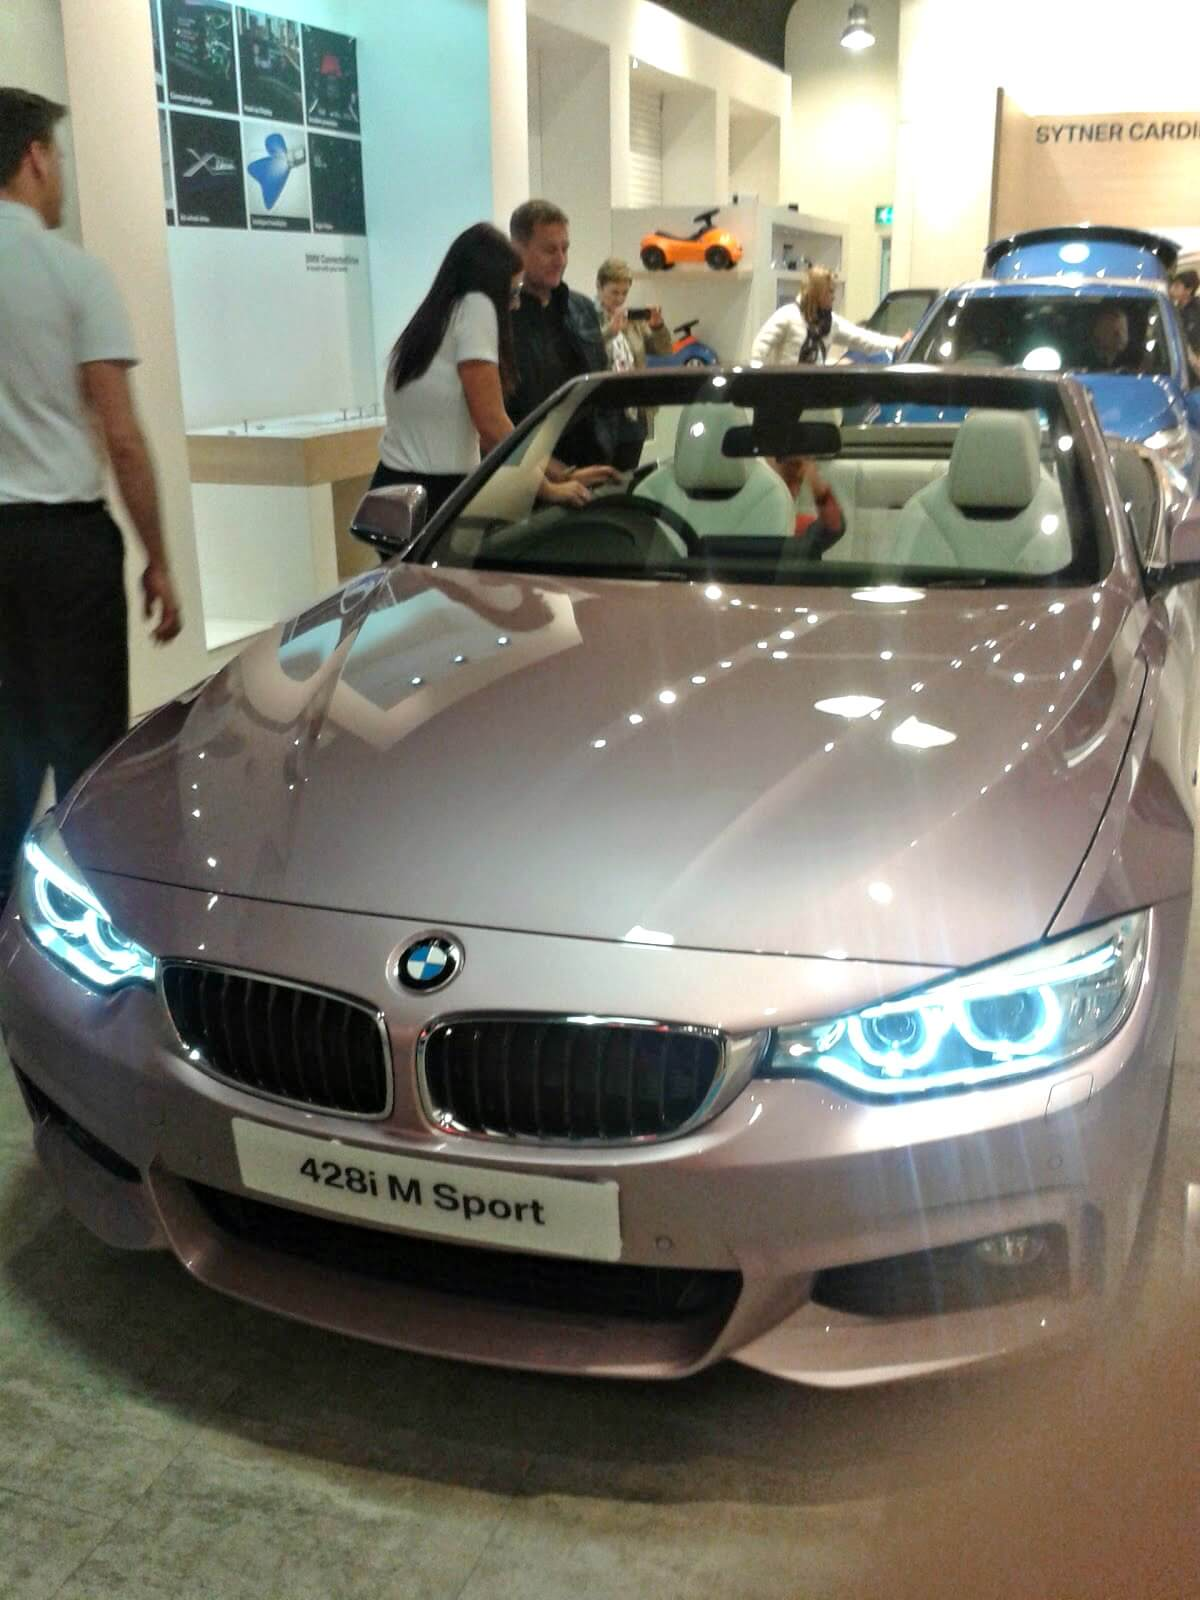 child can travel in the front of a car - BMW in a recent popup in Cardiff